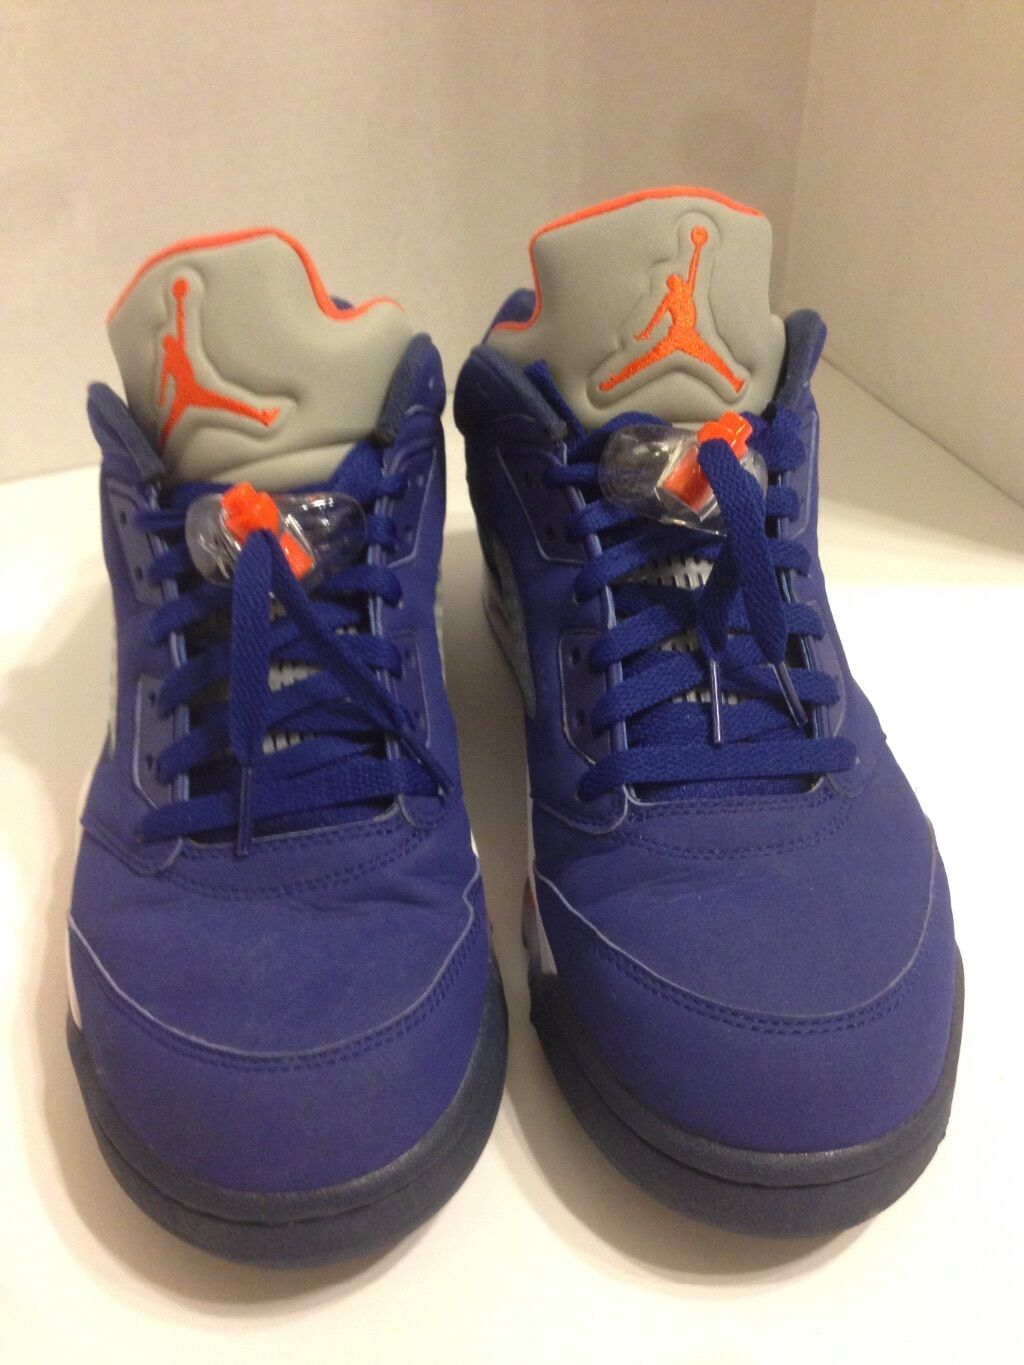 Nike Air Jordan 5 V Retro Low Knicks NY Royal Blue Orange Comfortable Special limited time